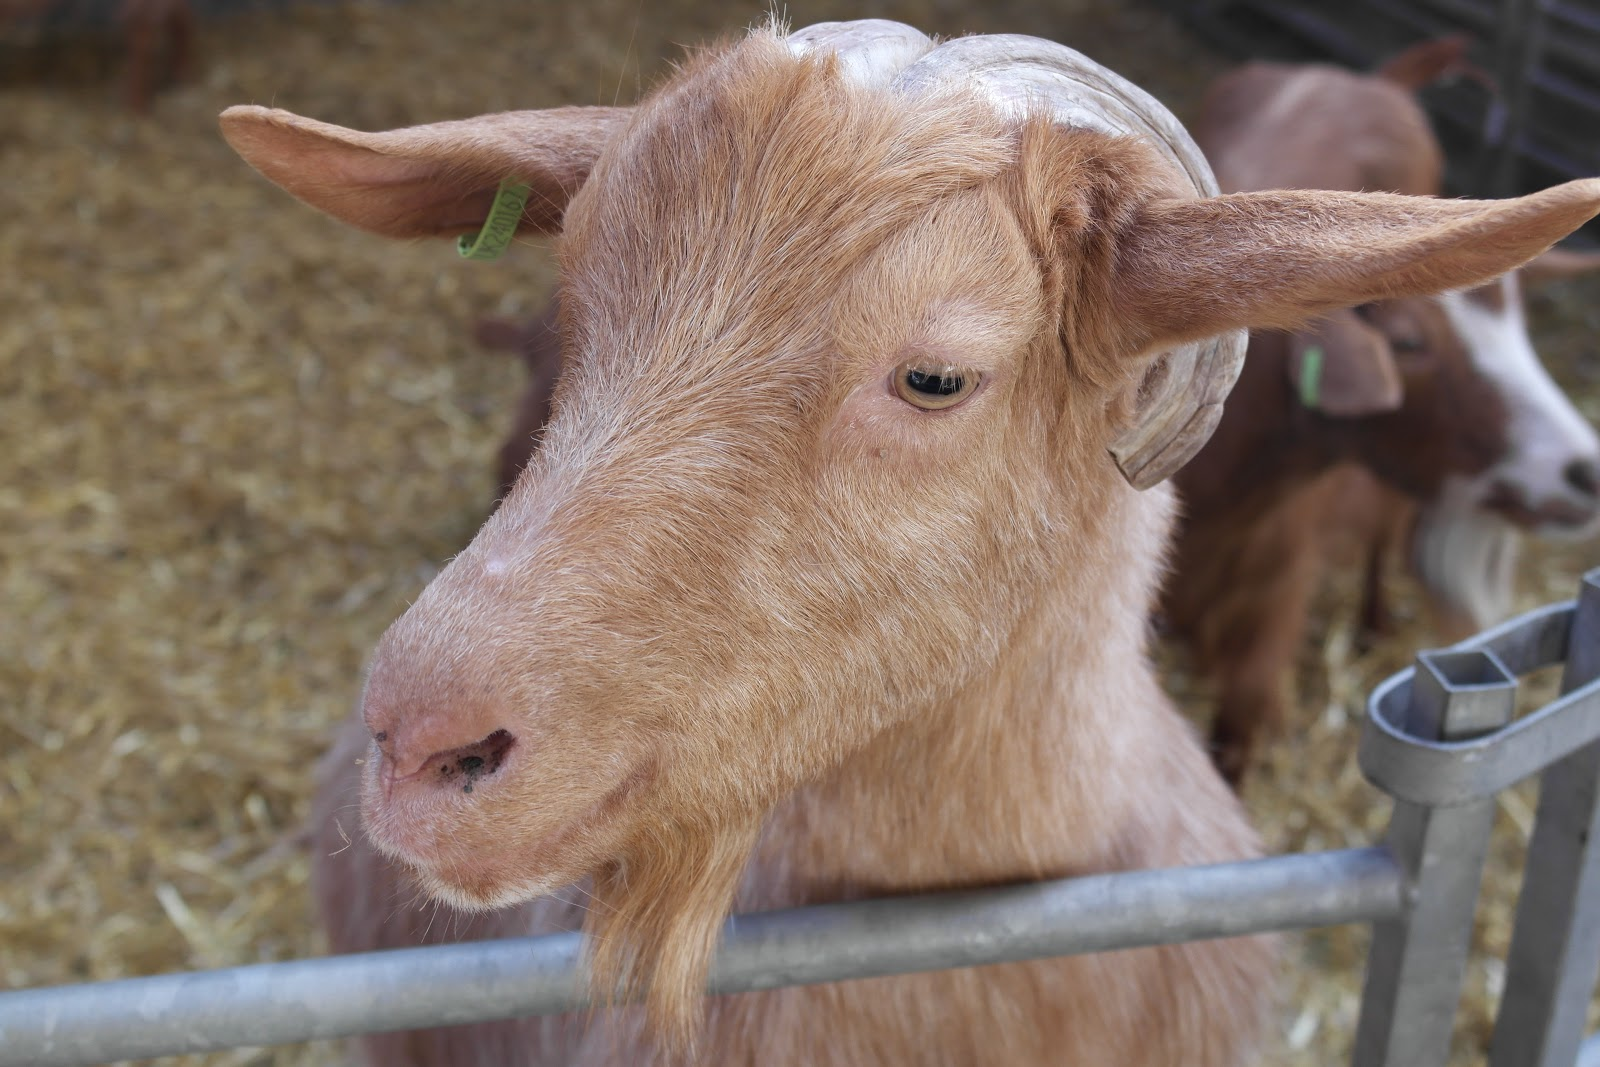 Goat at Mead Open Farm